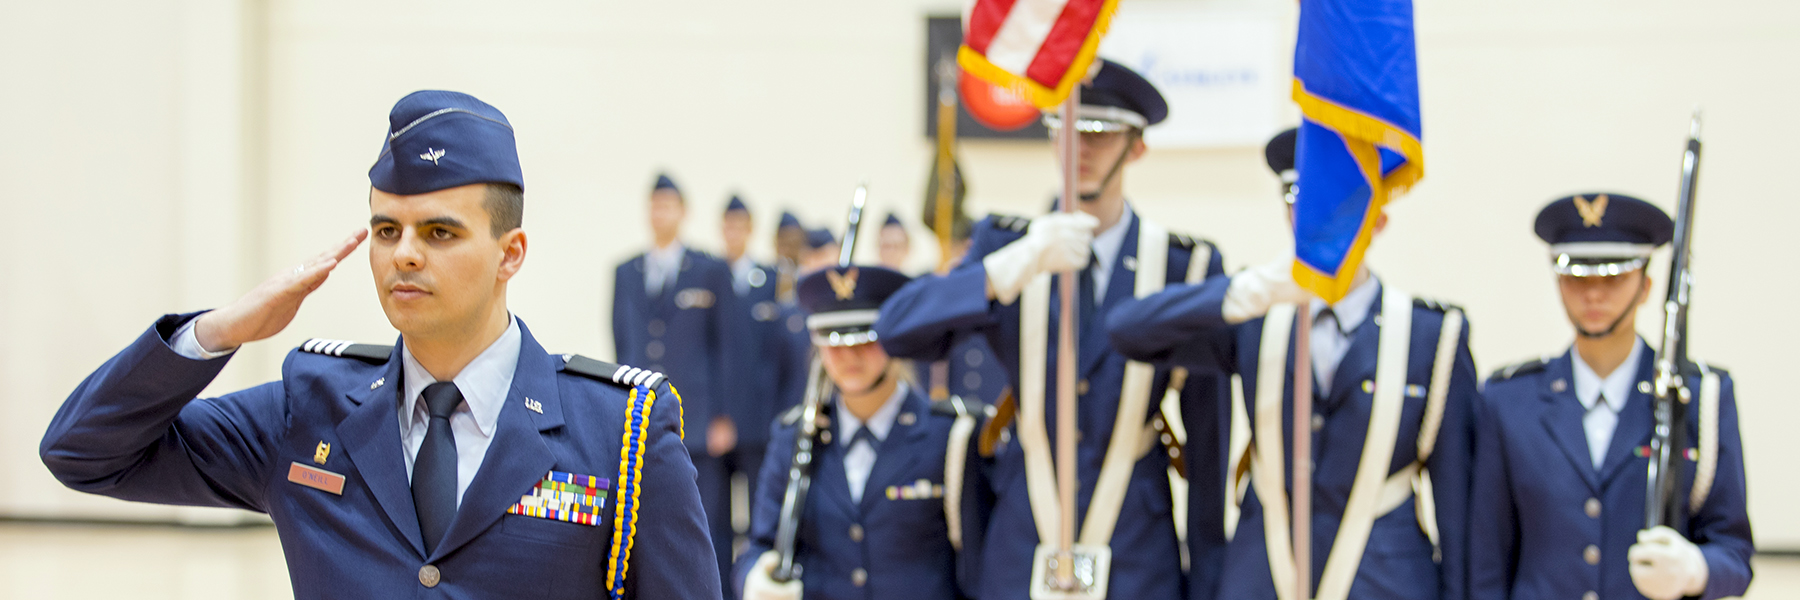 Air Force ROTC cadets standing at attention during ceremony.